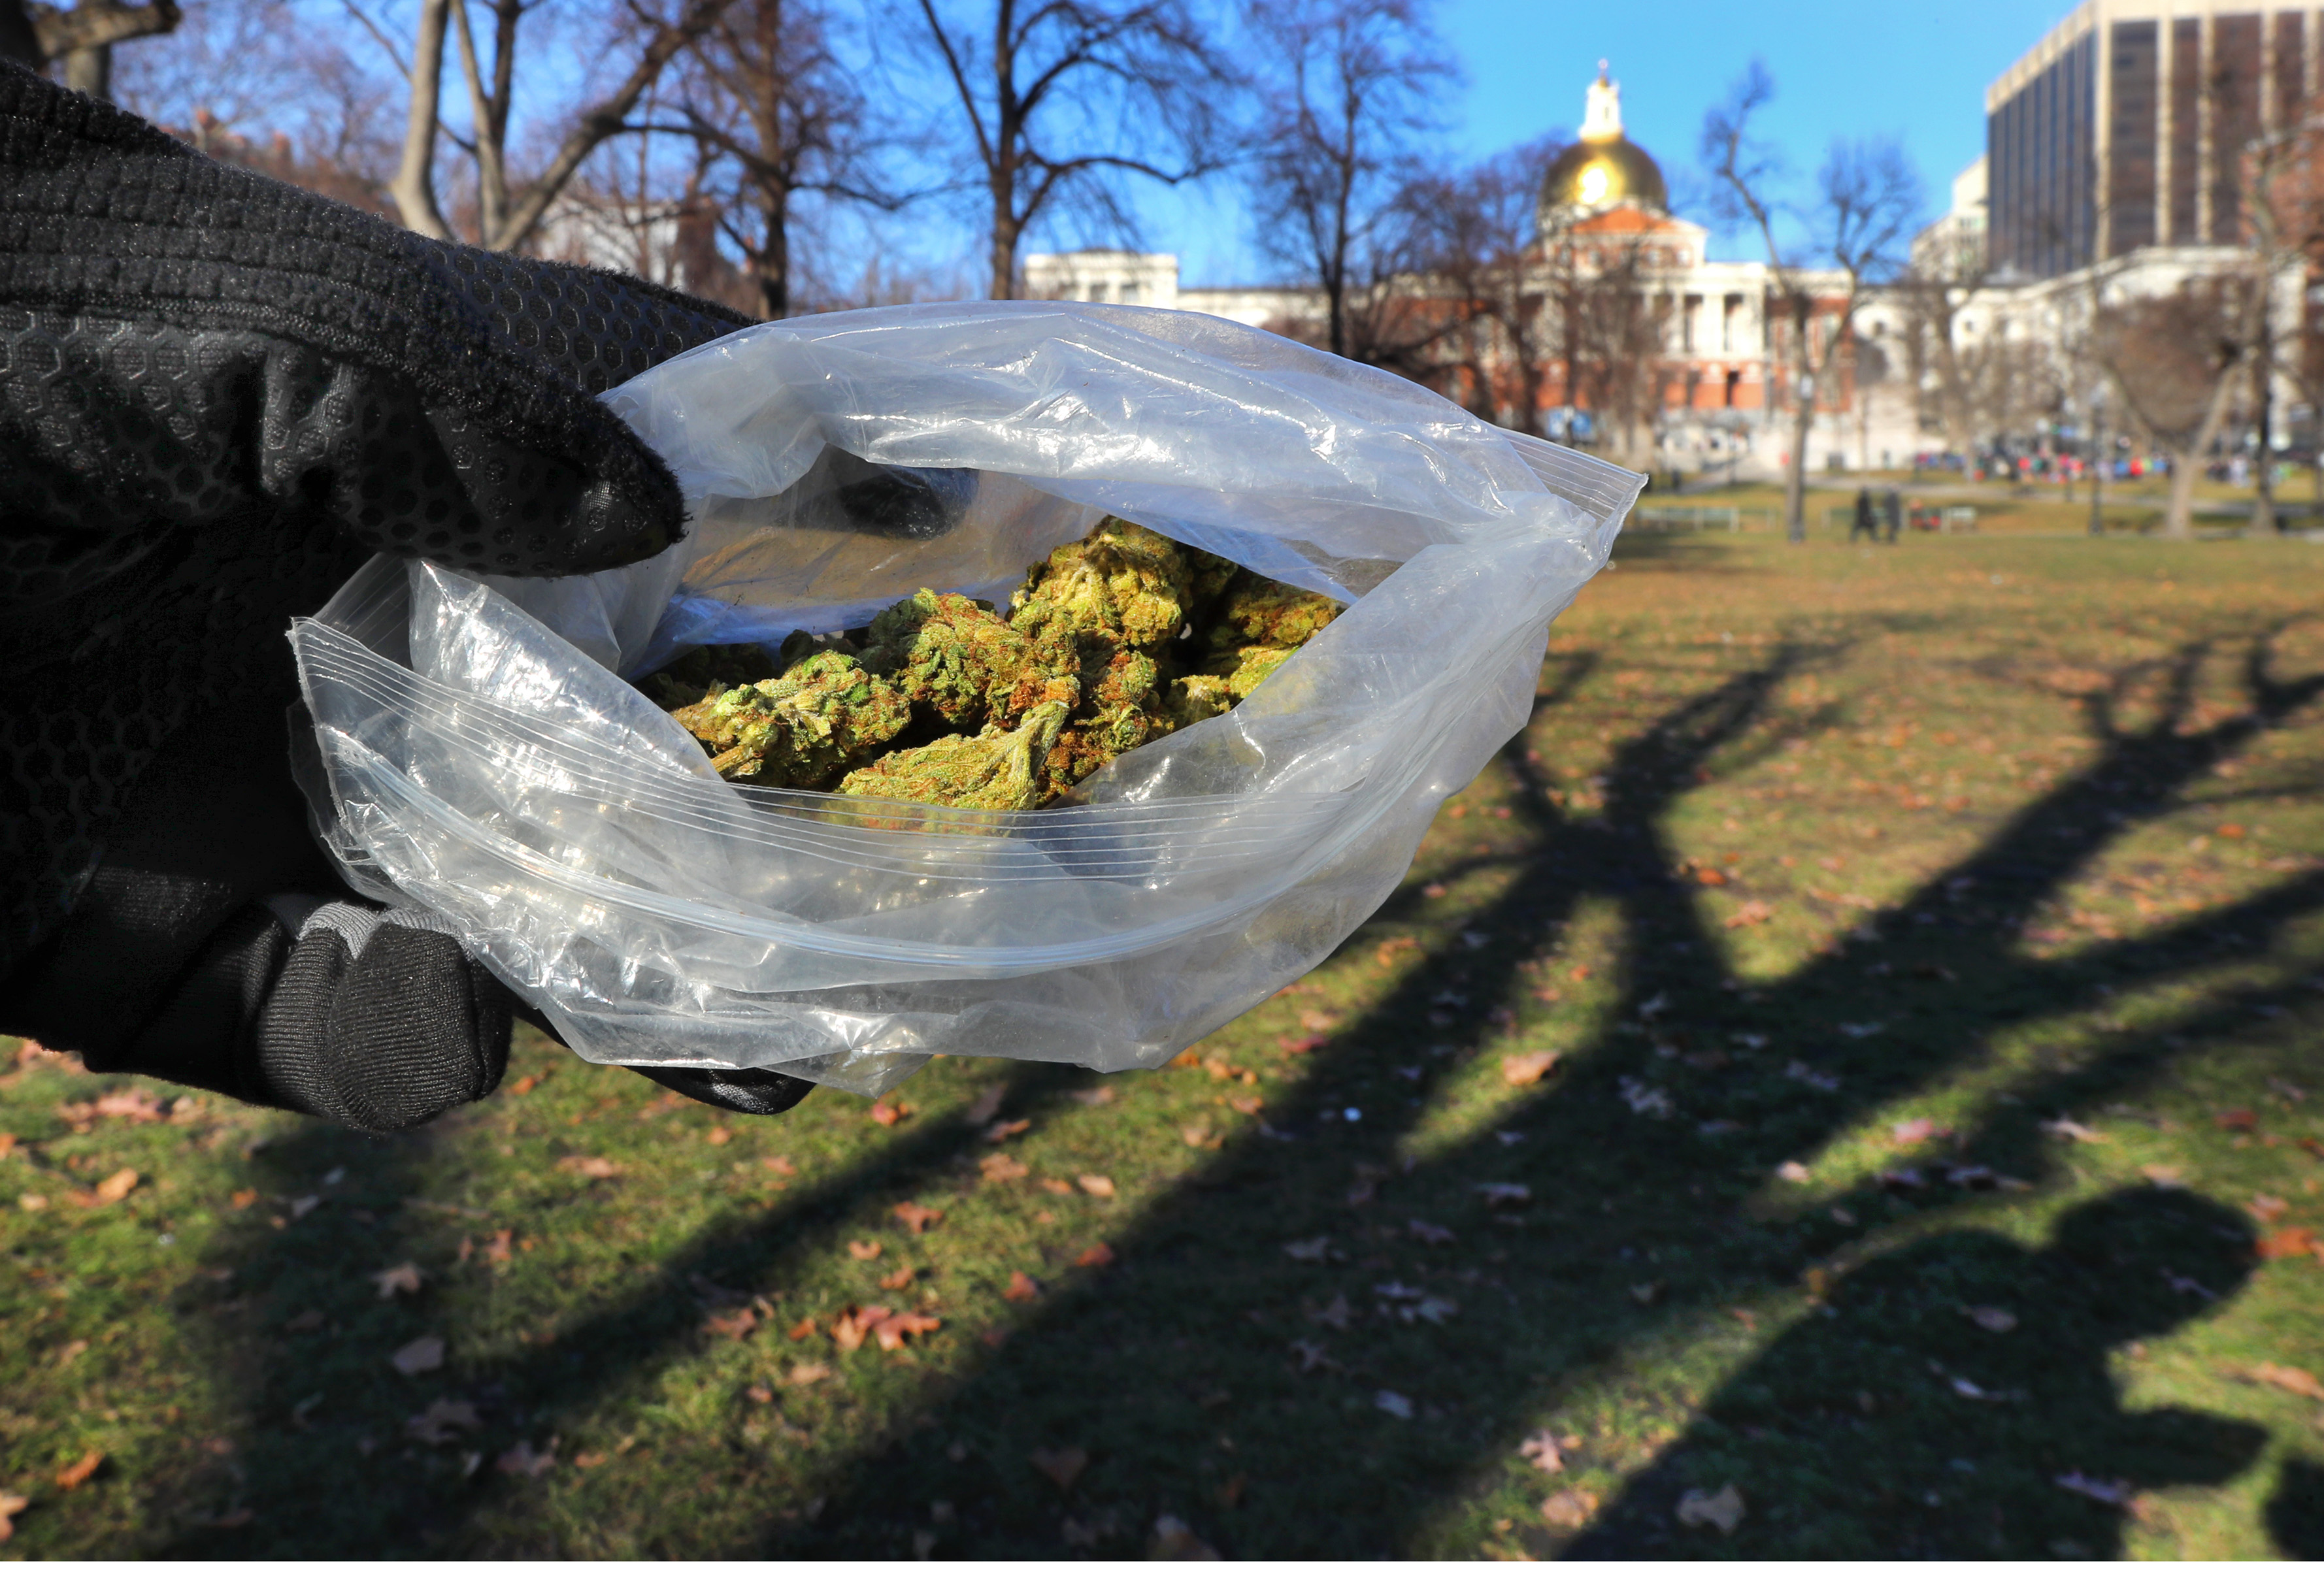 $325 plastic bags — with free weed 'gift' — advertised on